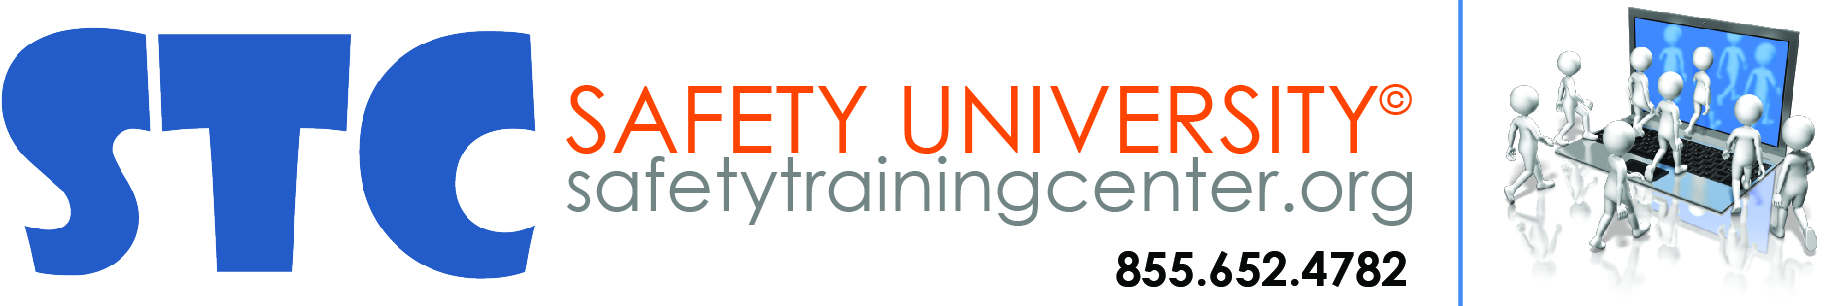 Online Safety University